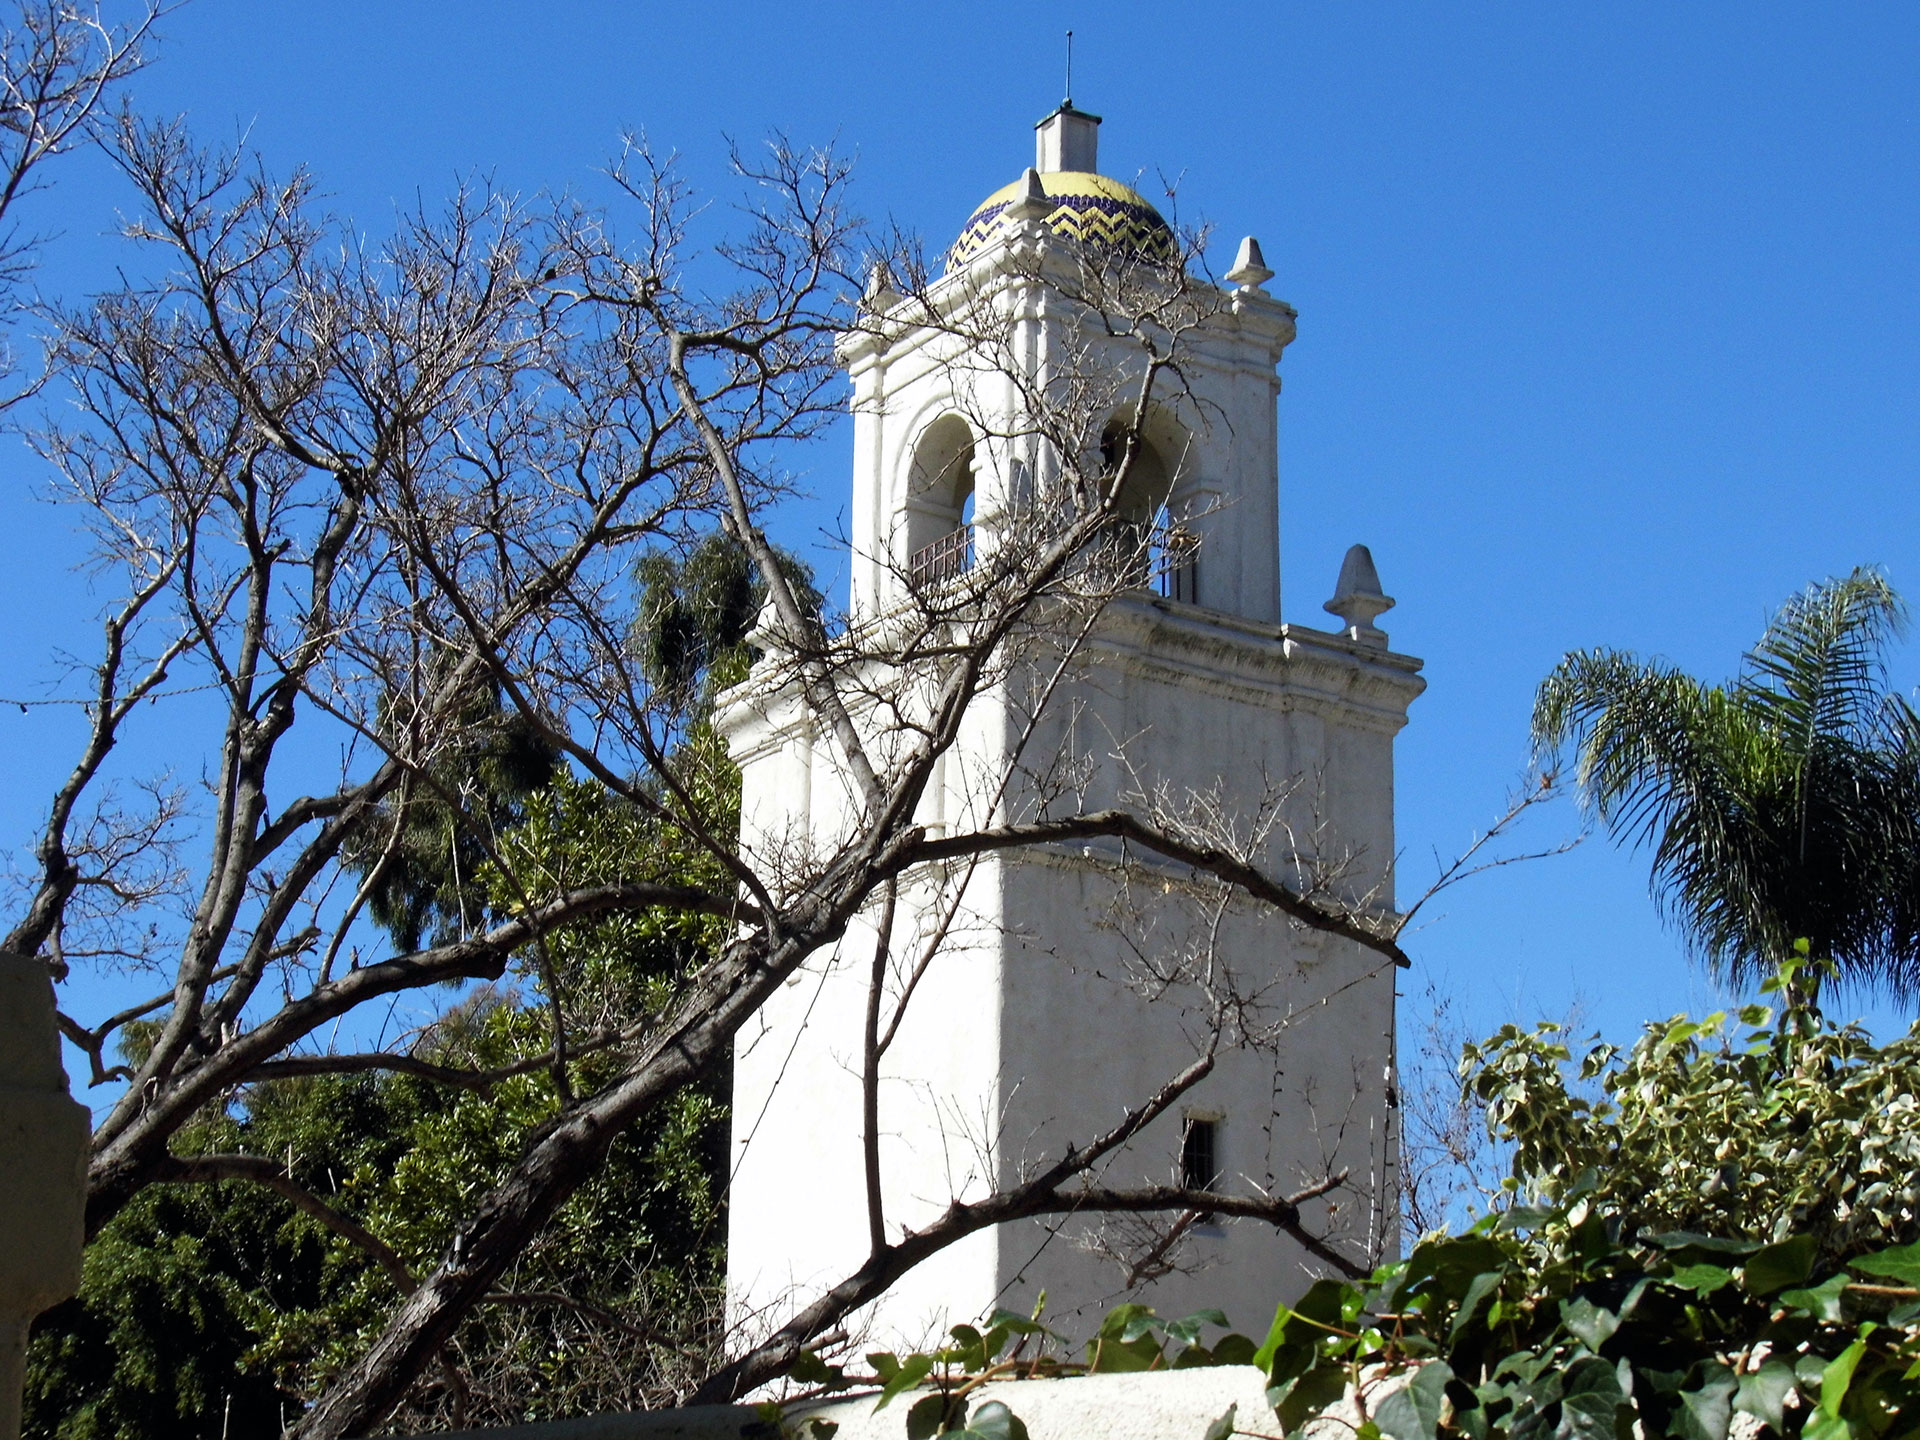 The Los Angeles River Center & Gardens features a bell tower in the Early California style. | Sandi Hemmerlein